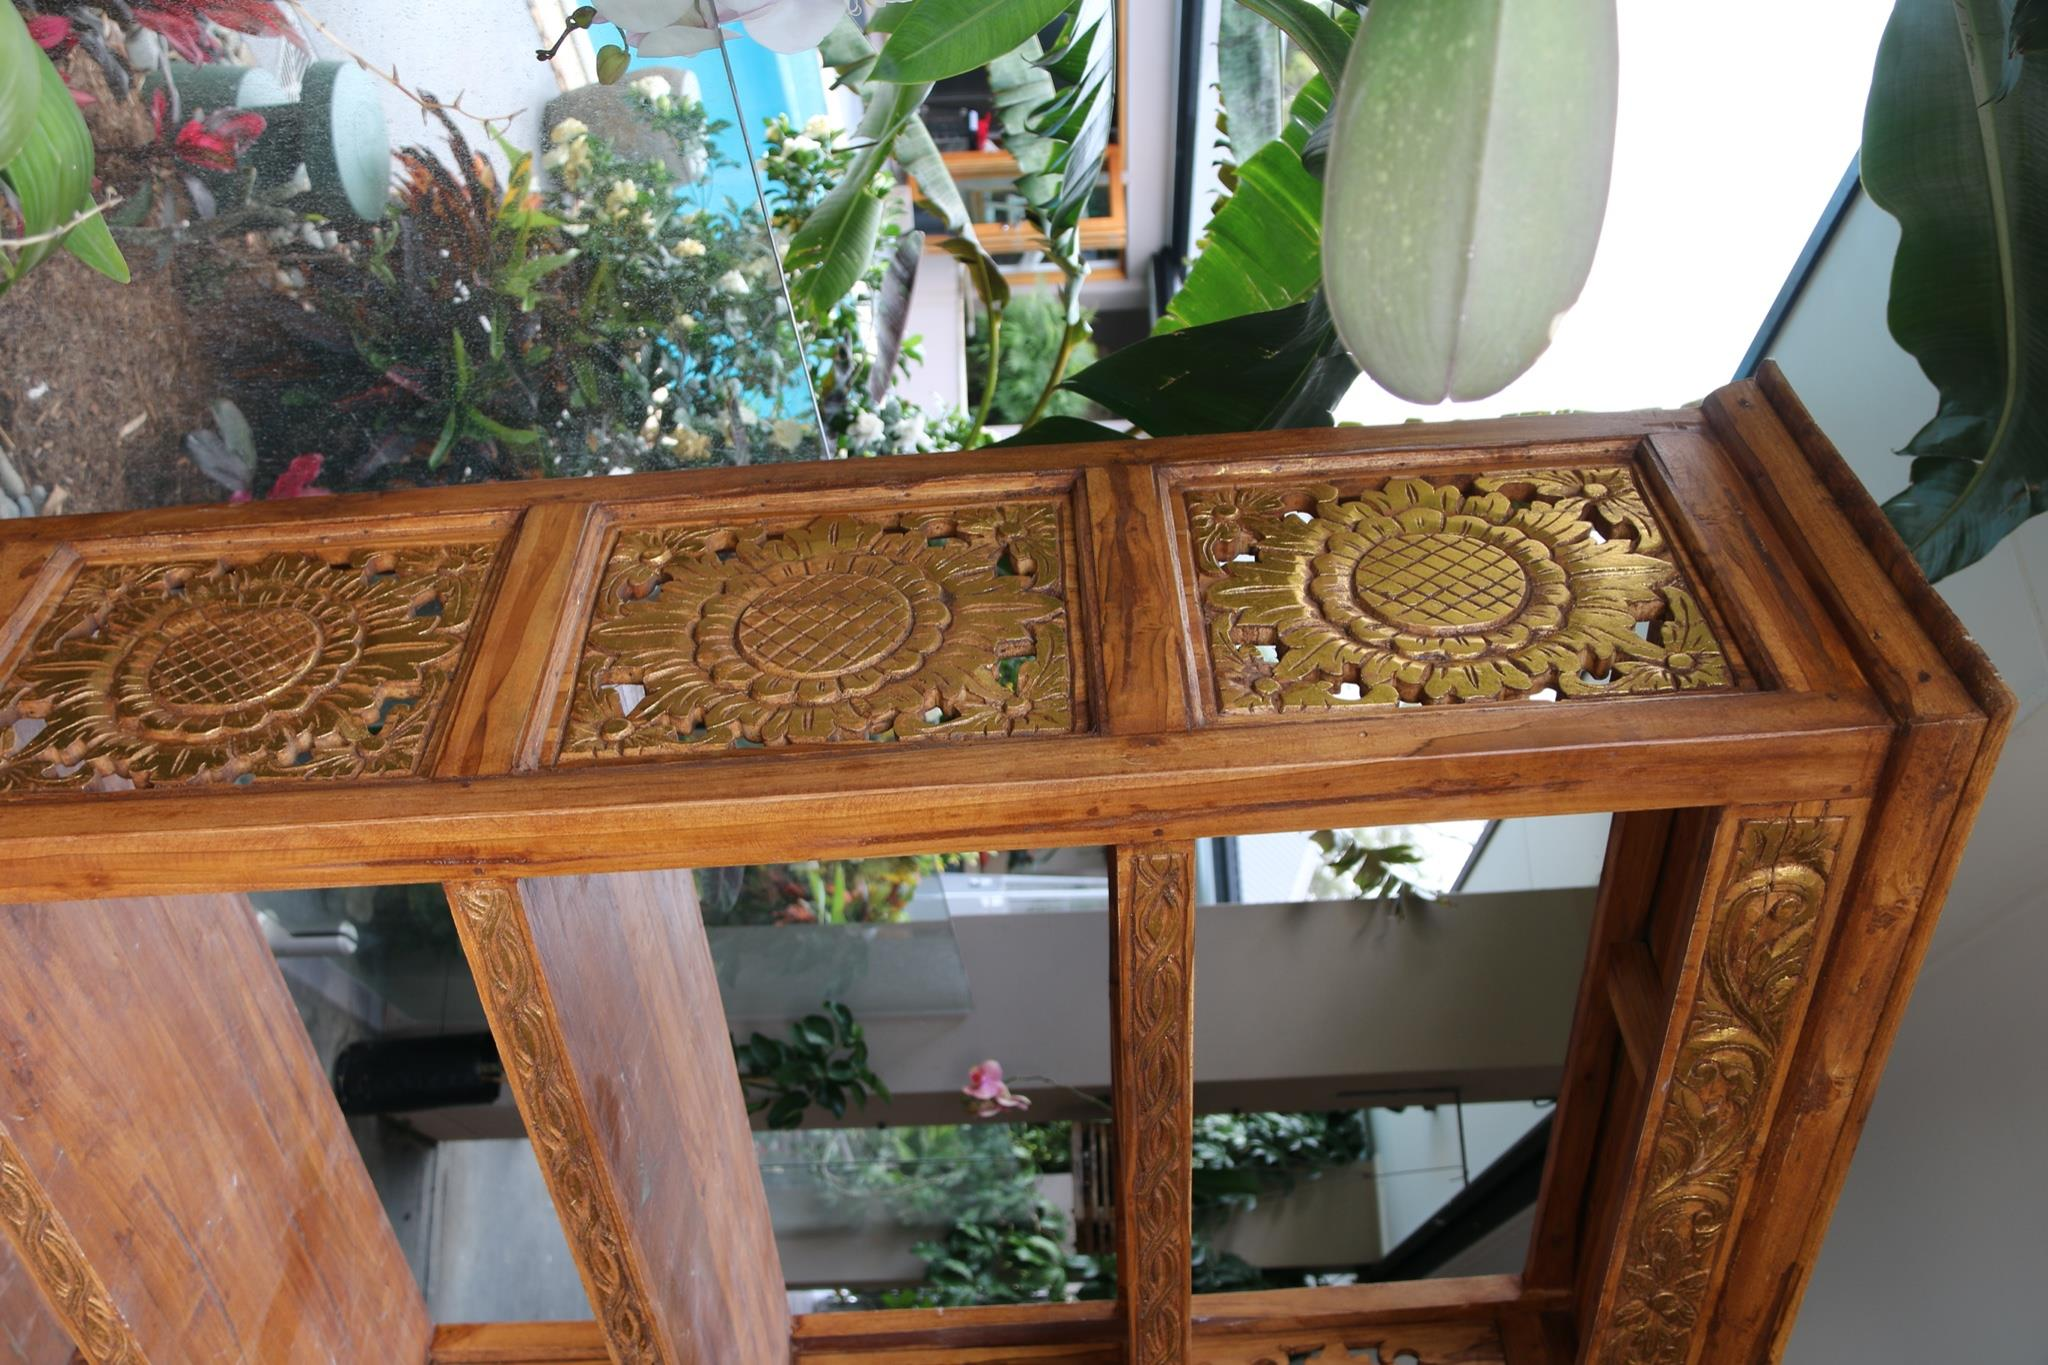 NEW BEAUTIFULLY HAND CARVED & CRAFTED TEAK WOOD BALINESE BOOK SHELF UNIT